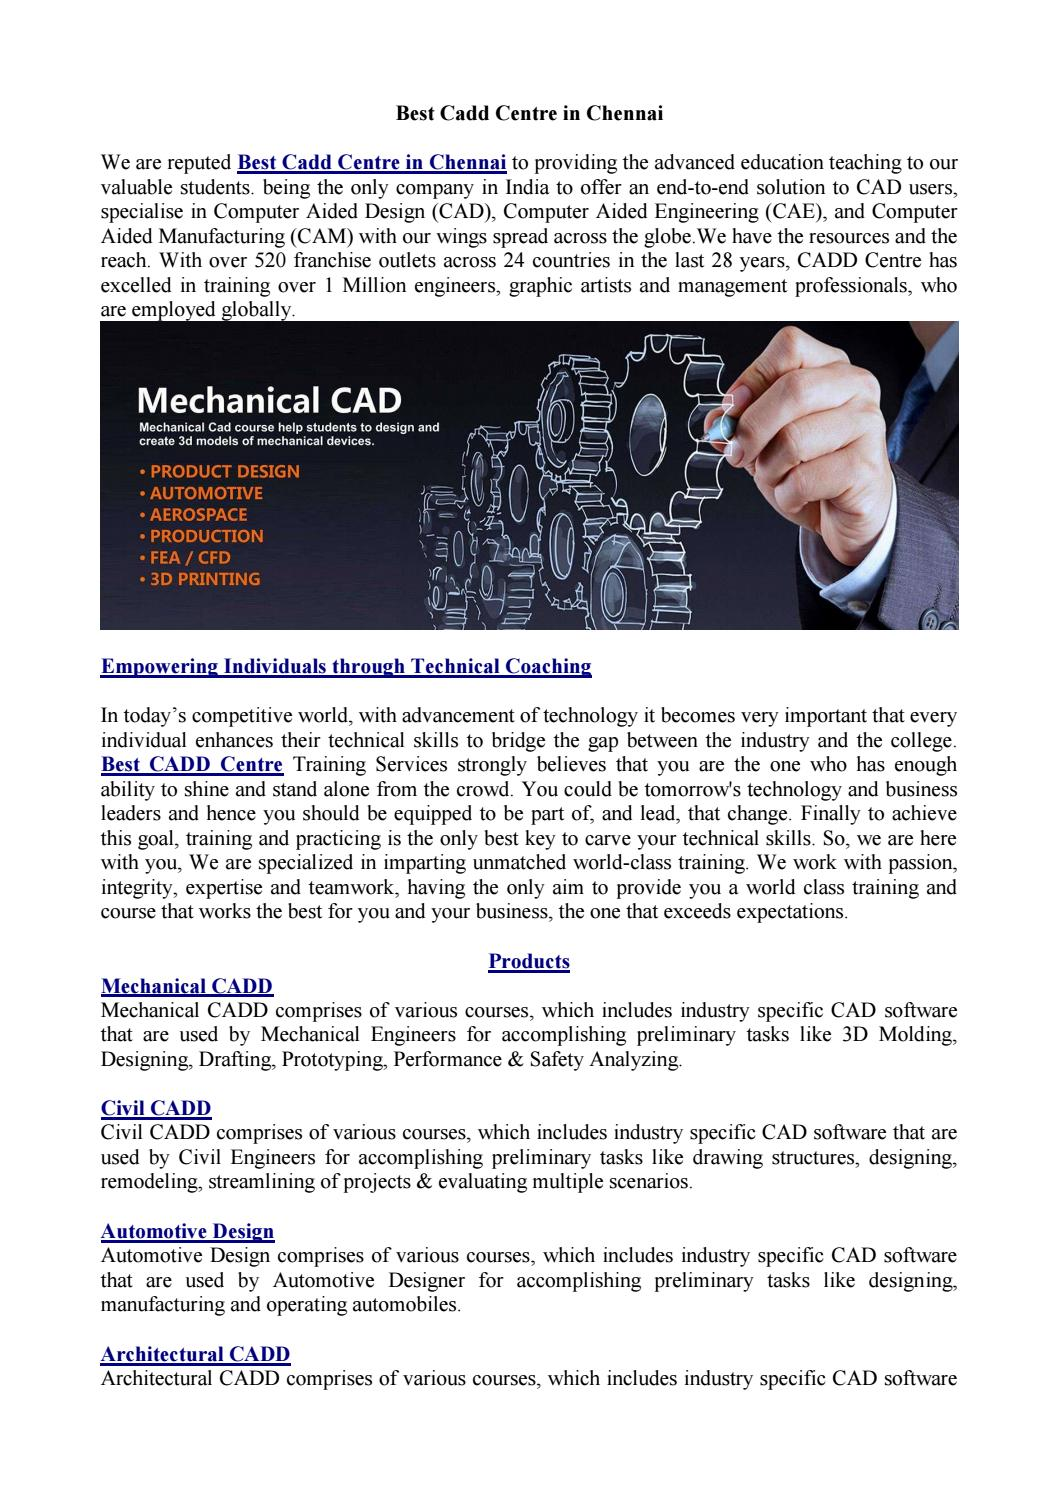 Best Cadd Centre In Chennai By Justseemobileapp Issuu